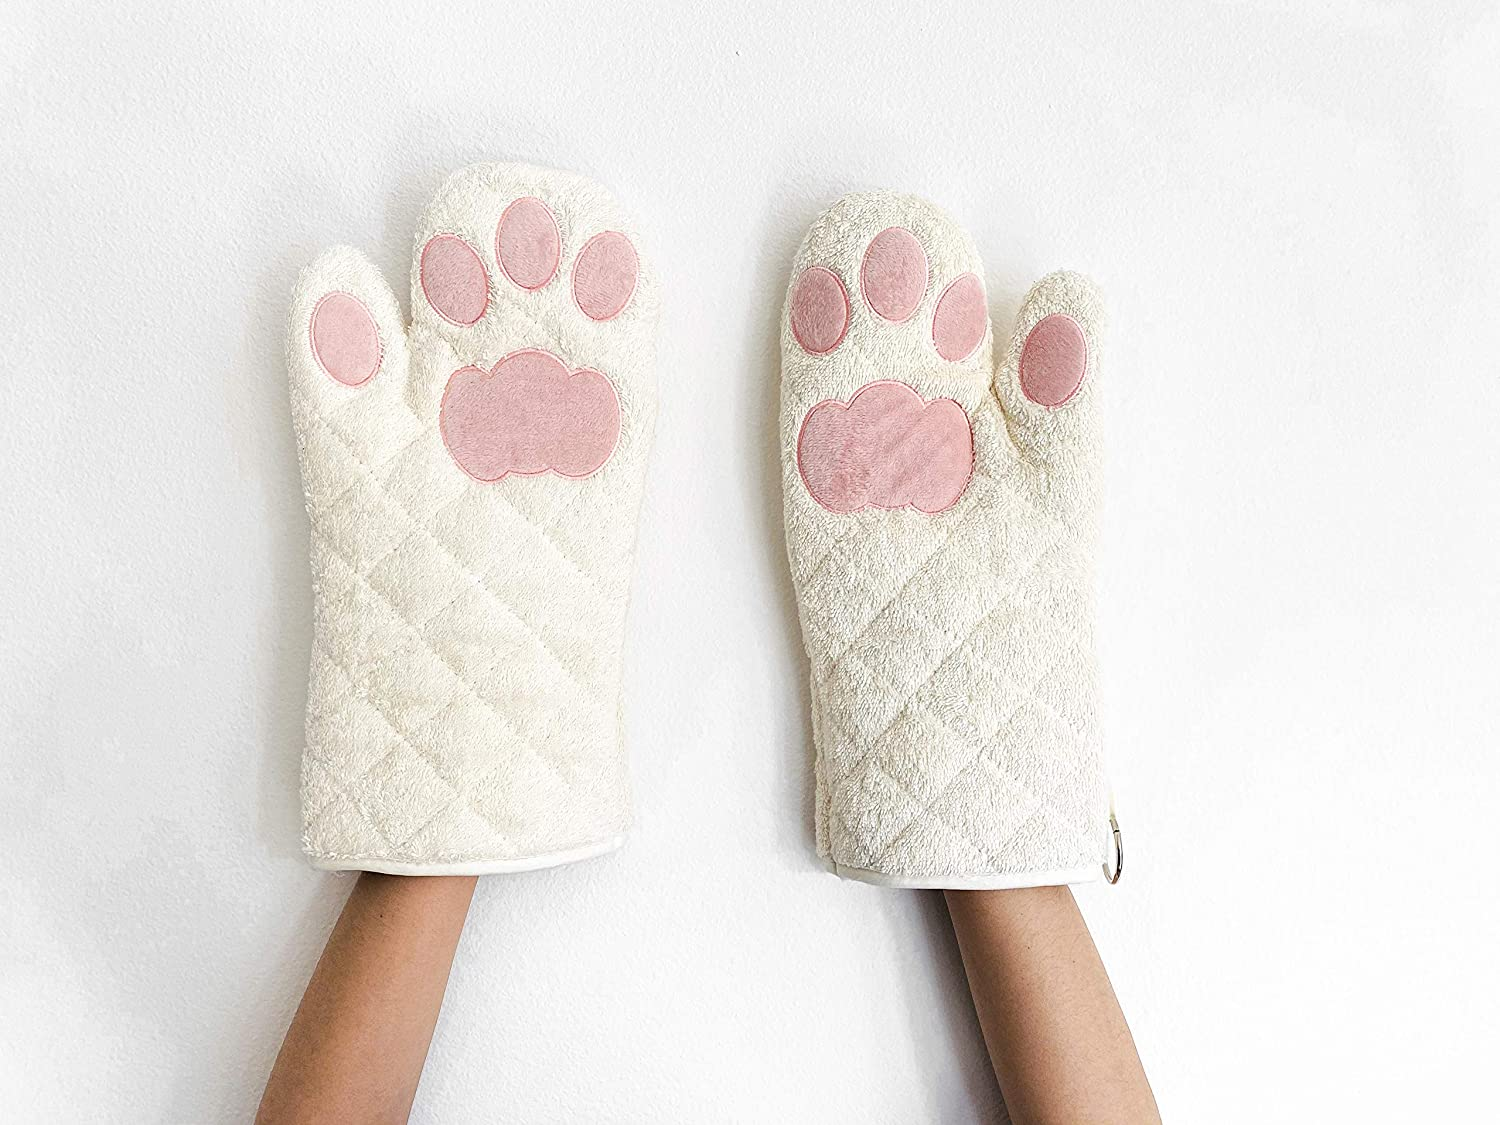 Cricket & Junebug Oven Mitts Cat Paws - White and Pink